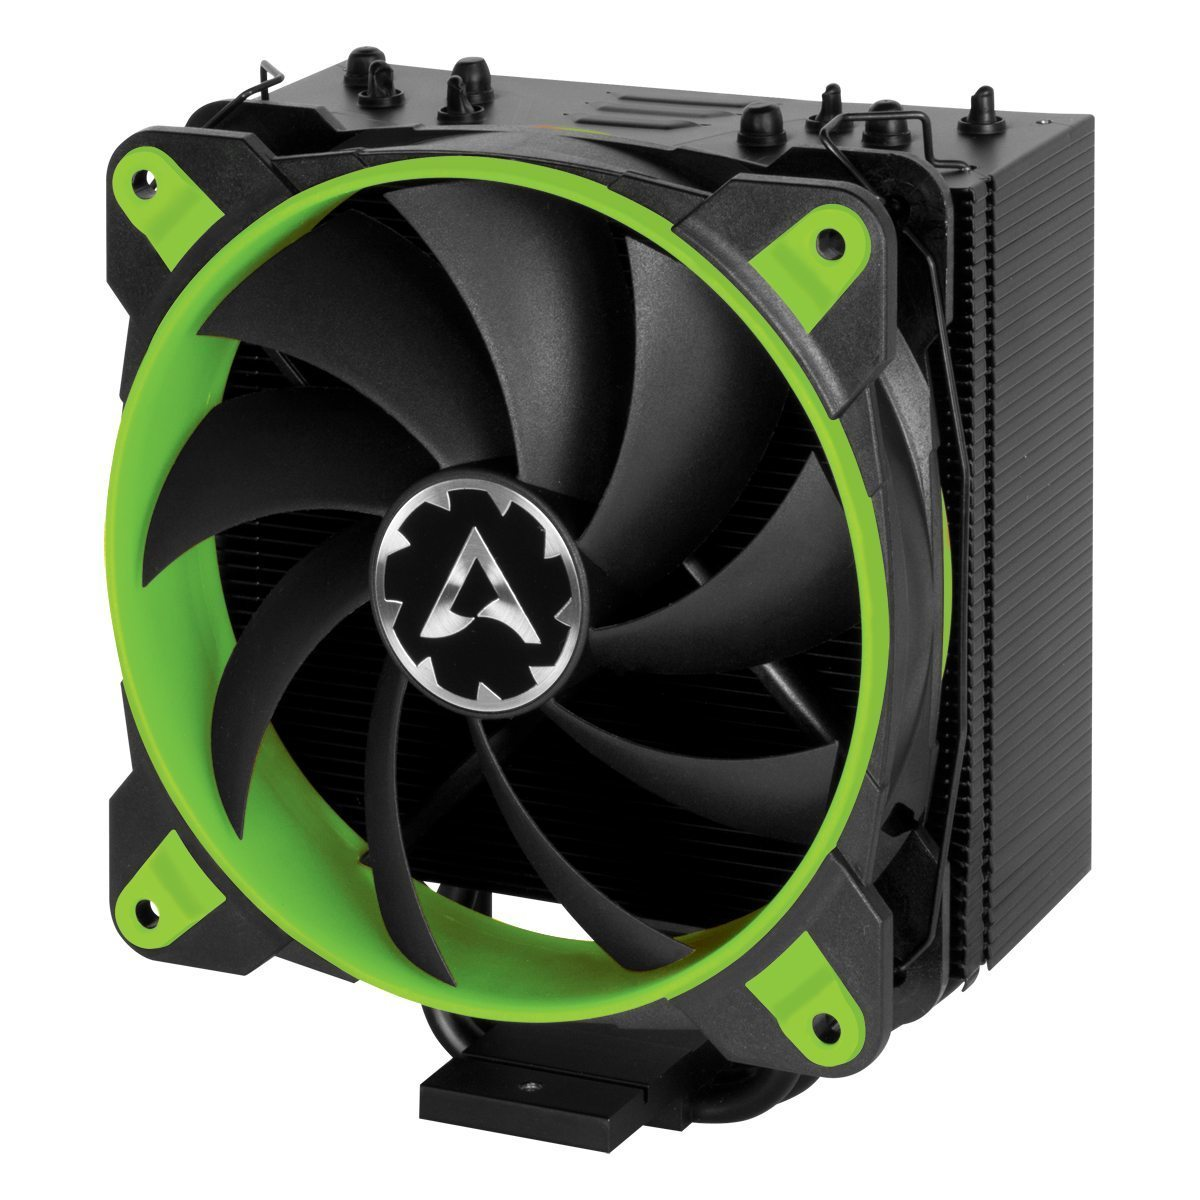 Freezer 33 eSports ONE - Green - LGA2066/LGA2011/LGA1151/AM4